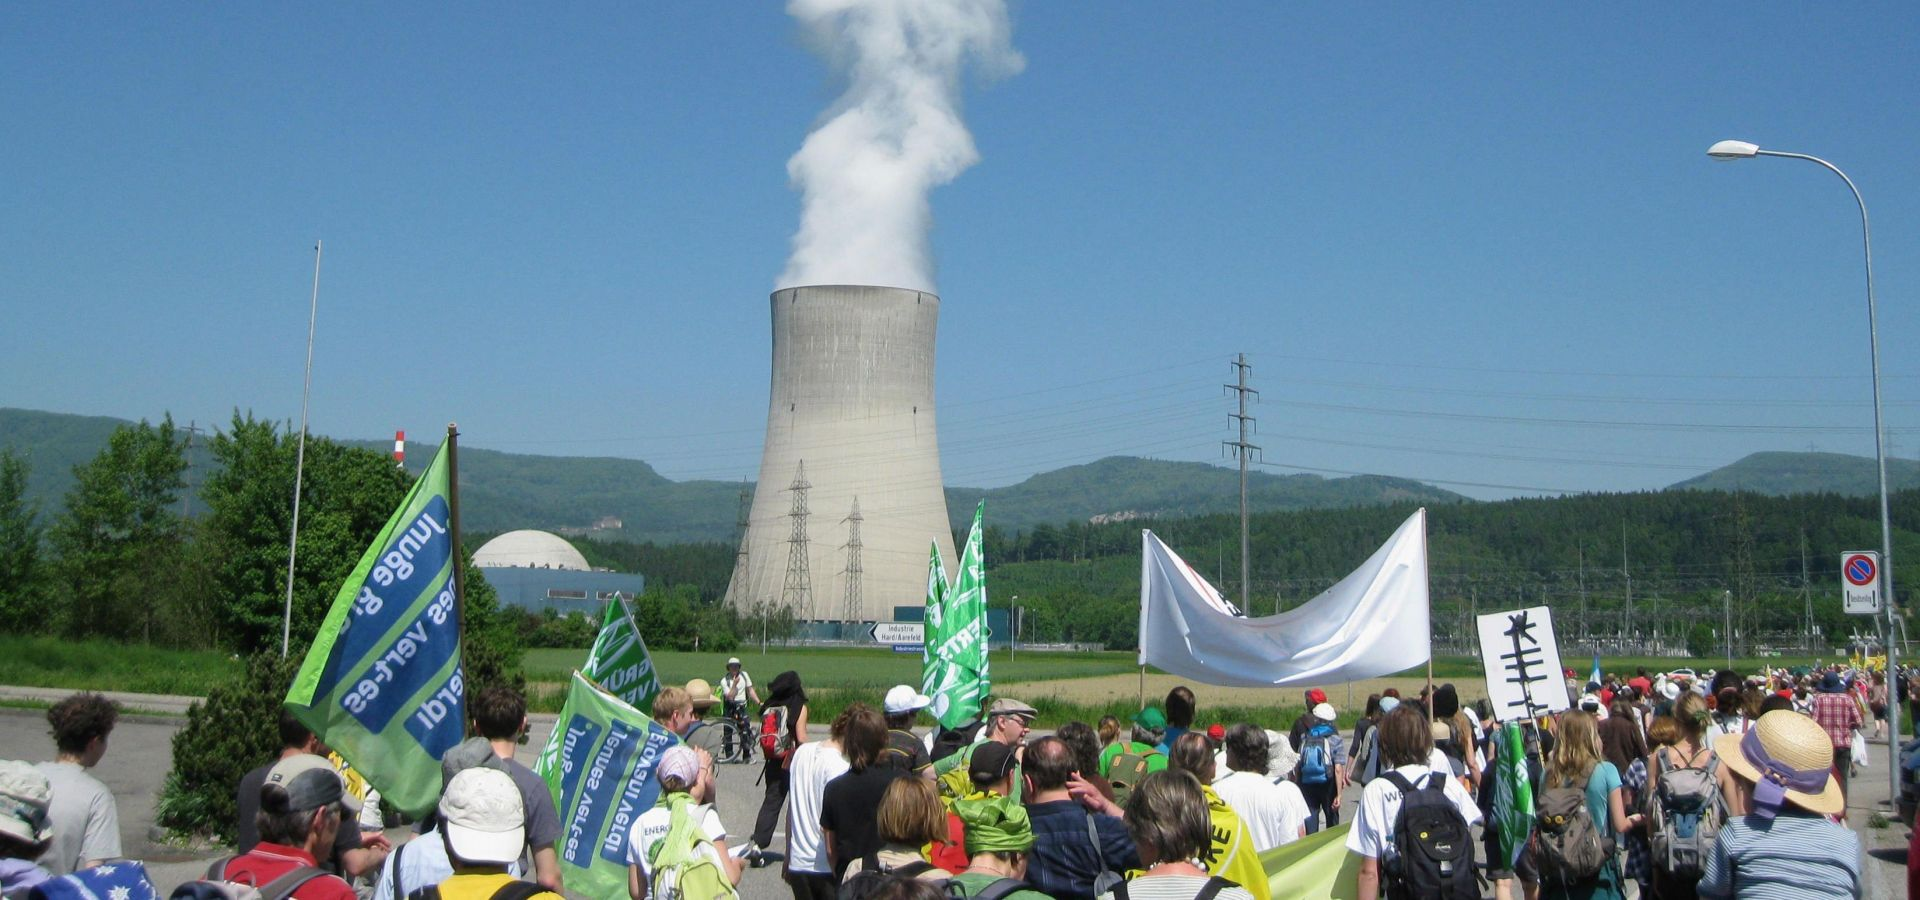 group of protesters by a nuclear plant on a sunny day